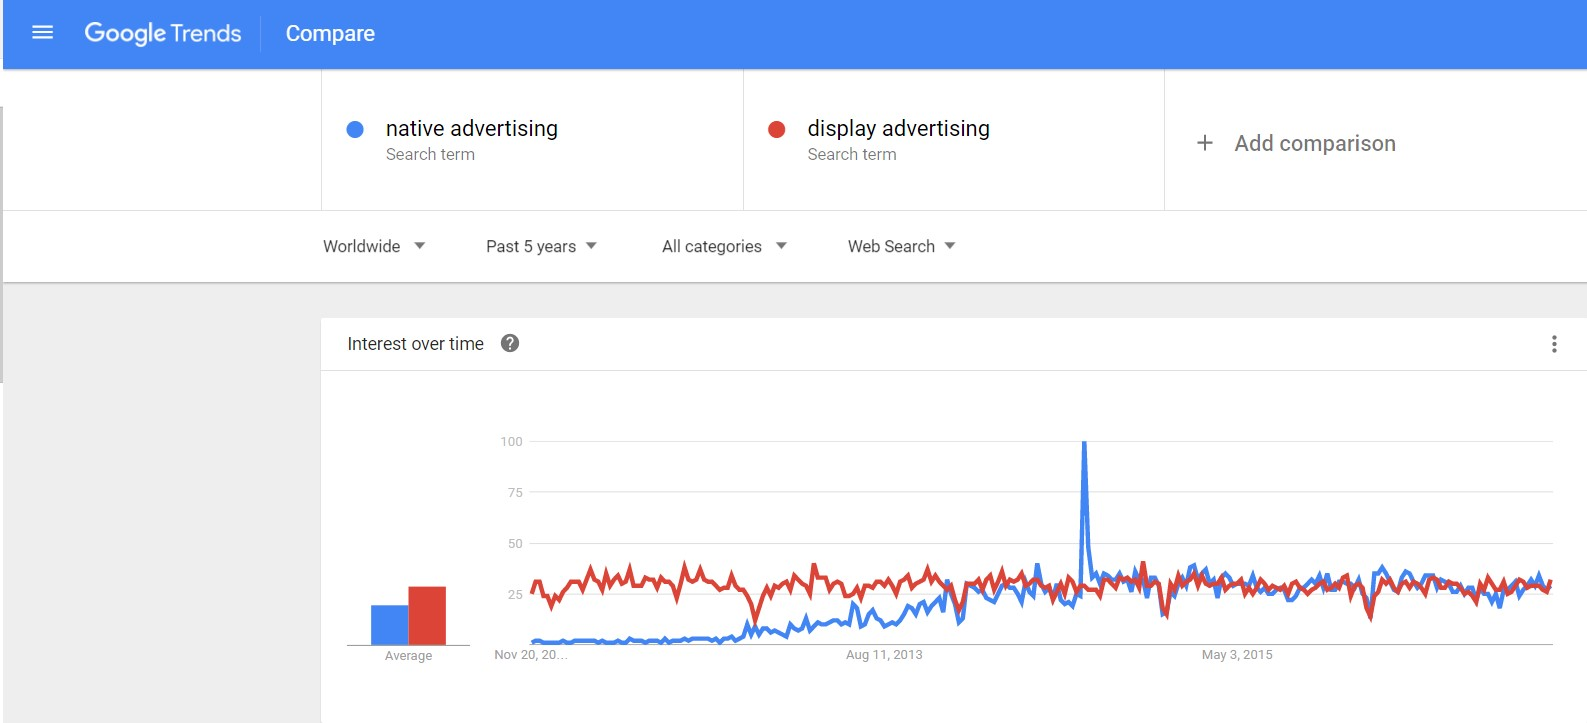 What types of advertising bring the highest income